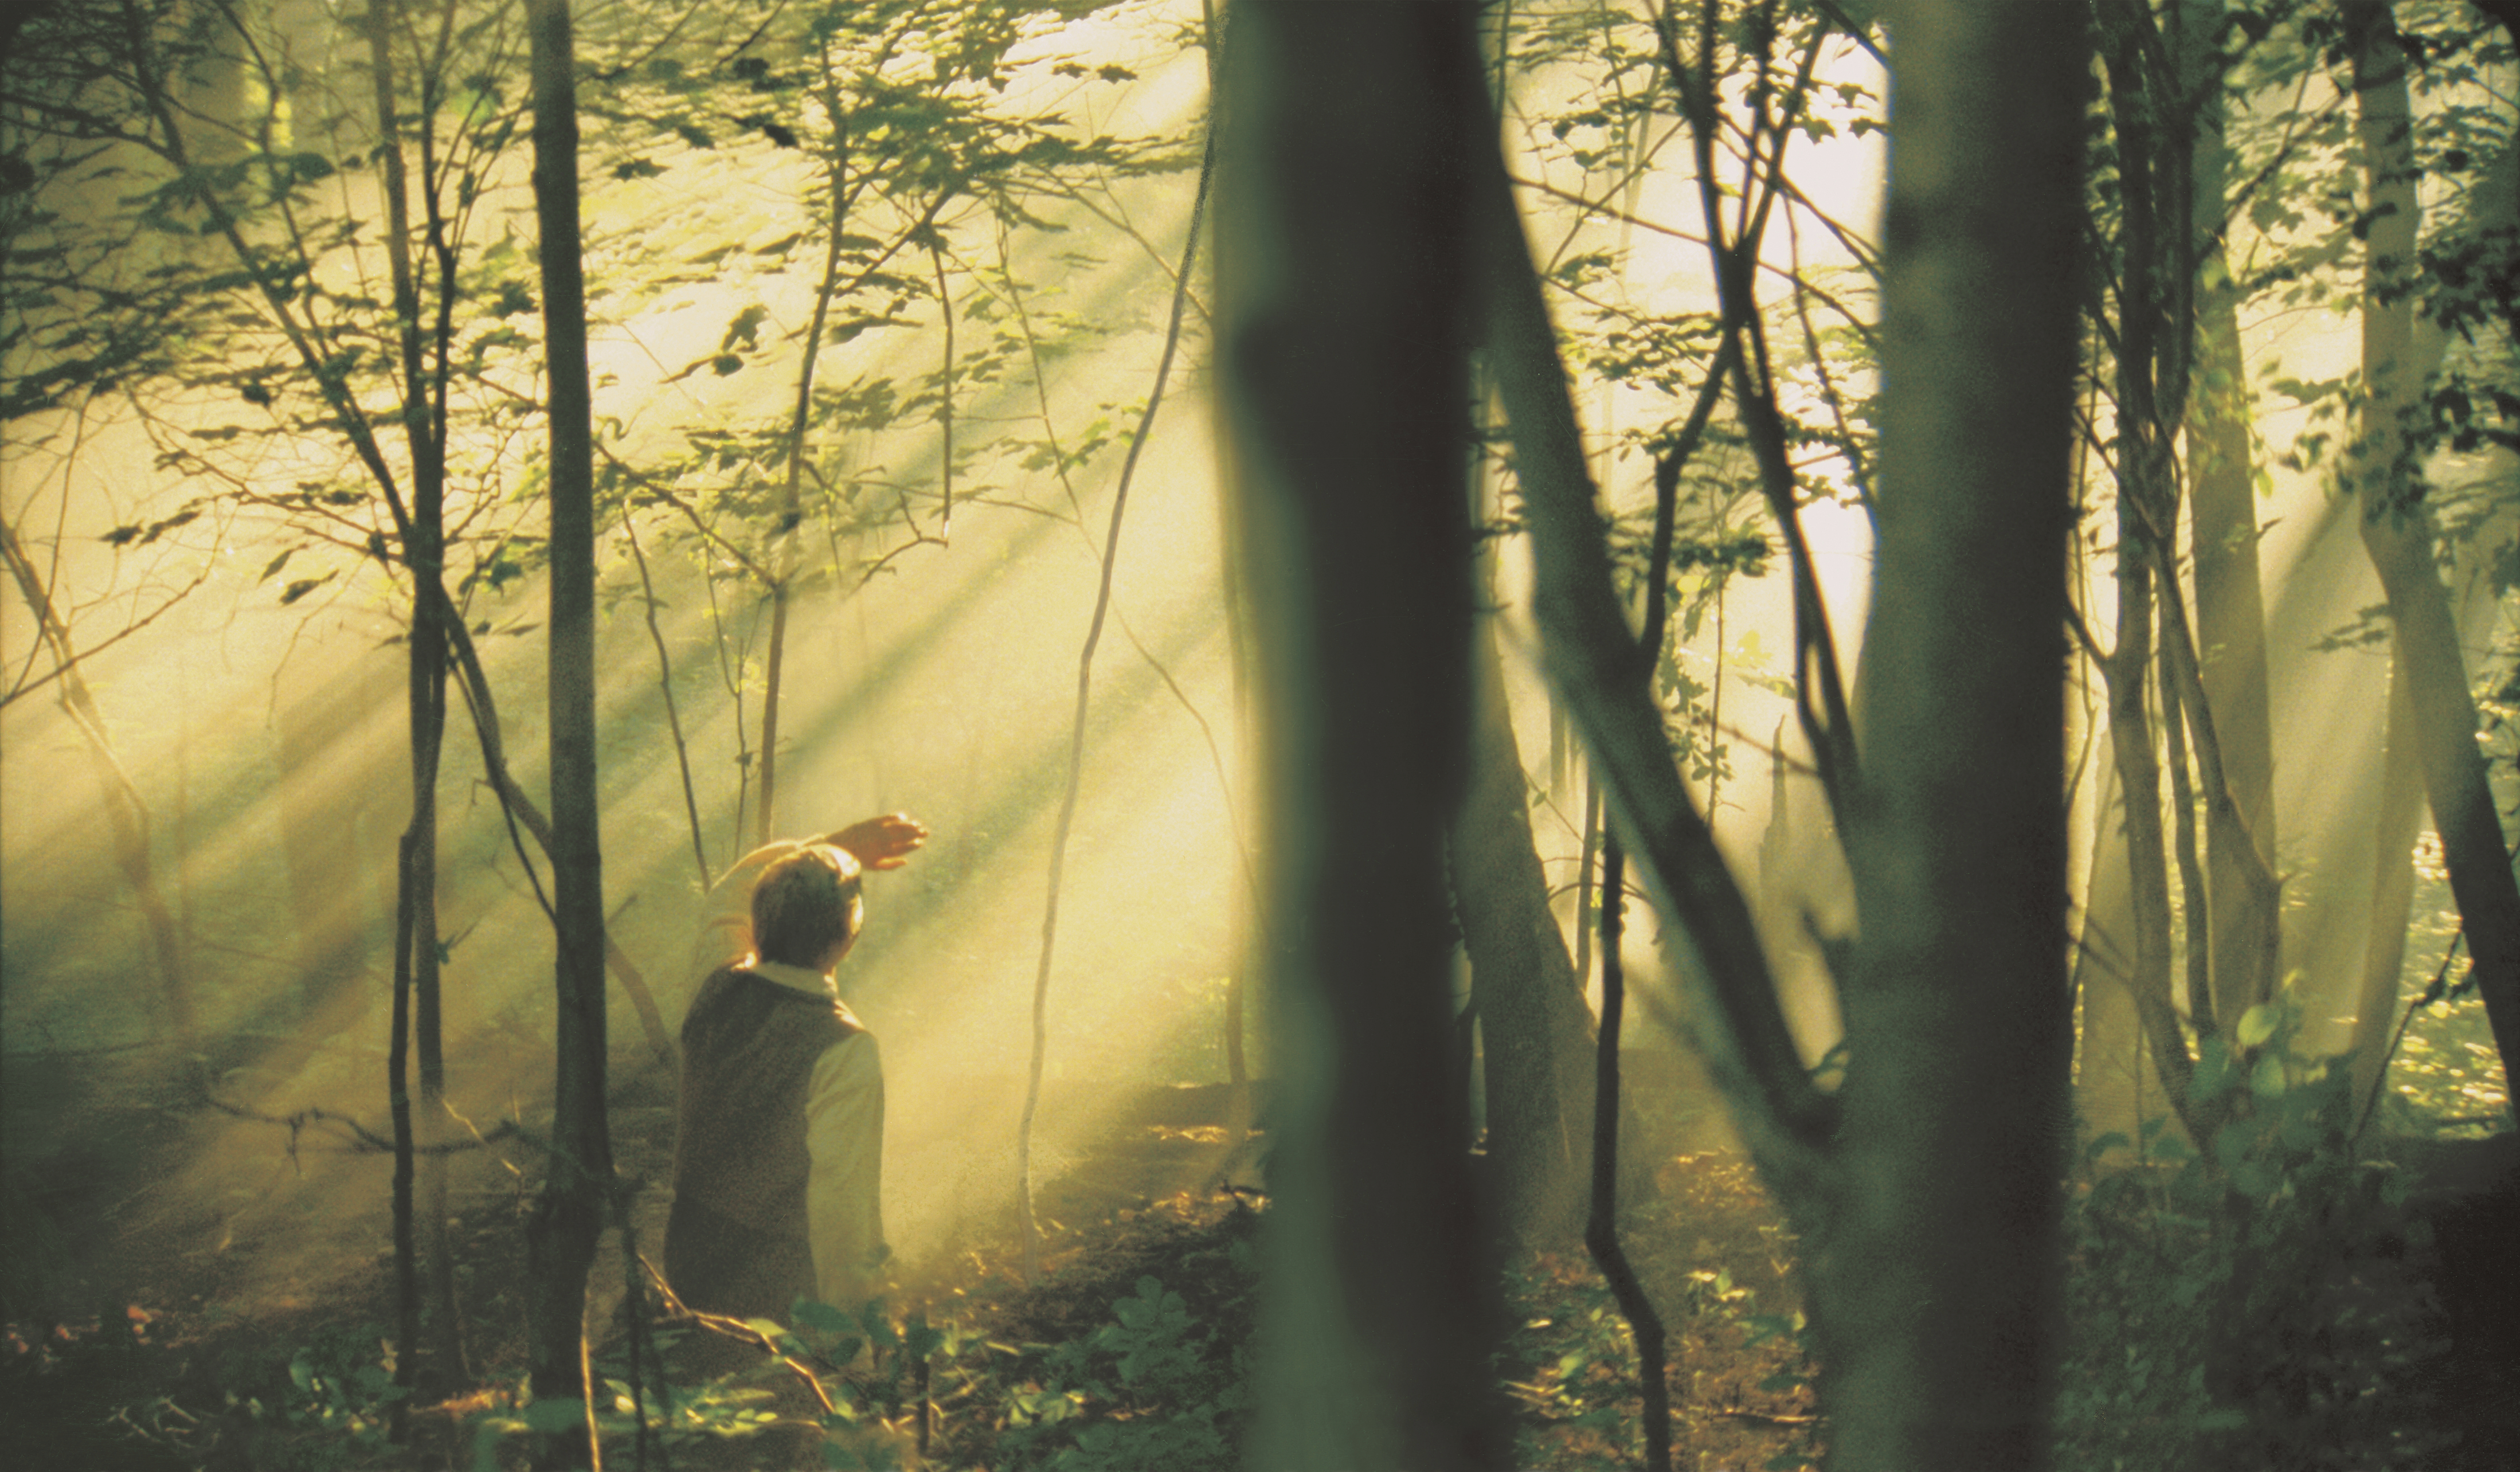 Joseph Smith Jr. kneeling in the Sacred Grove during the First Vision.